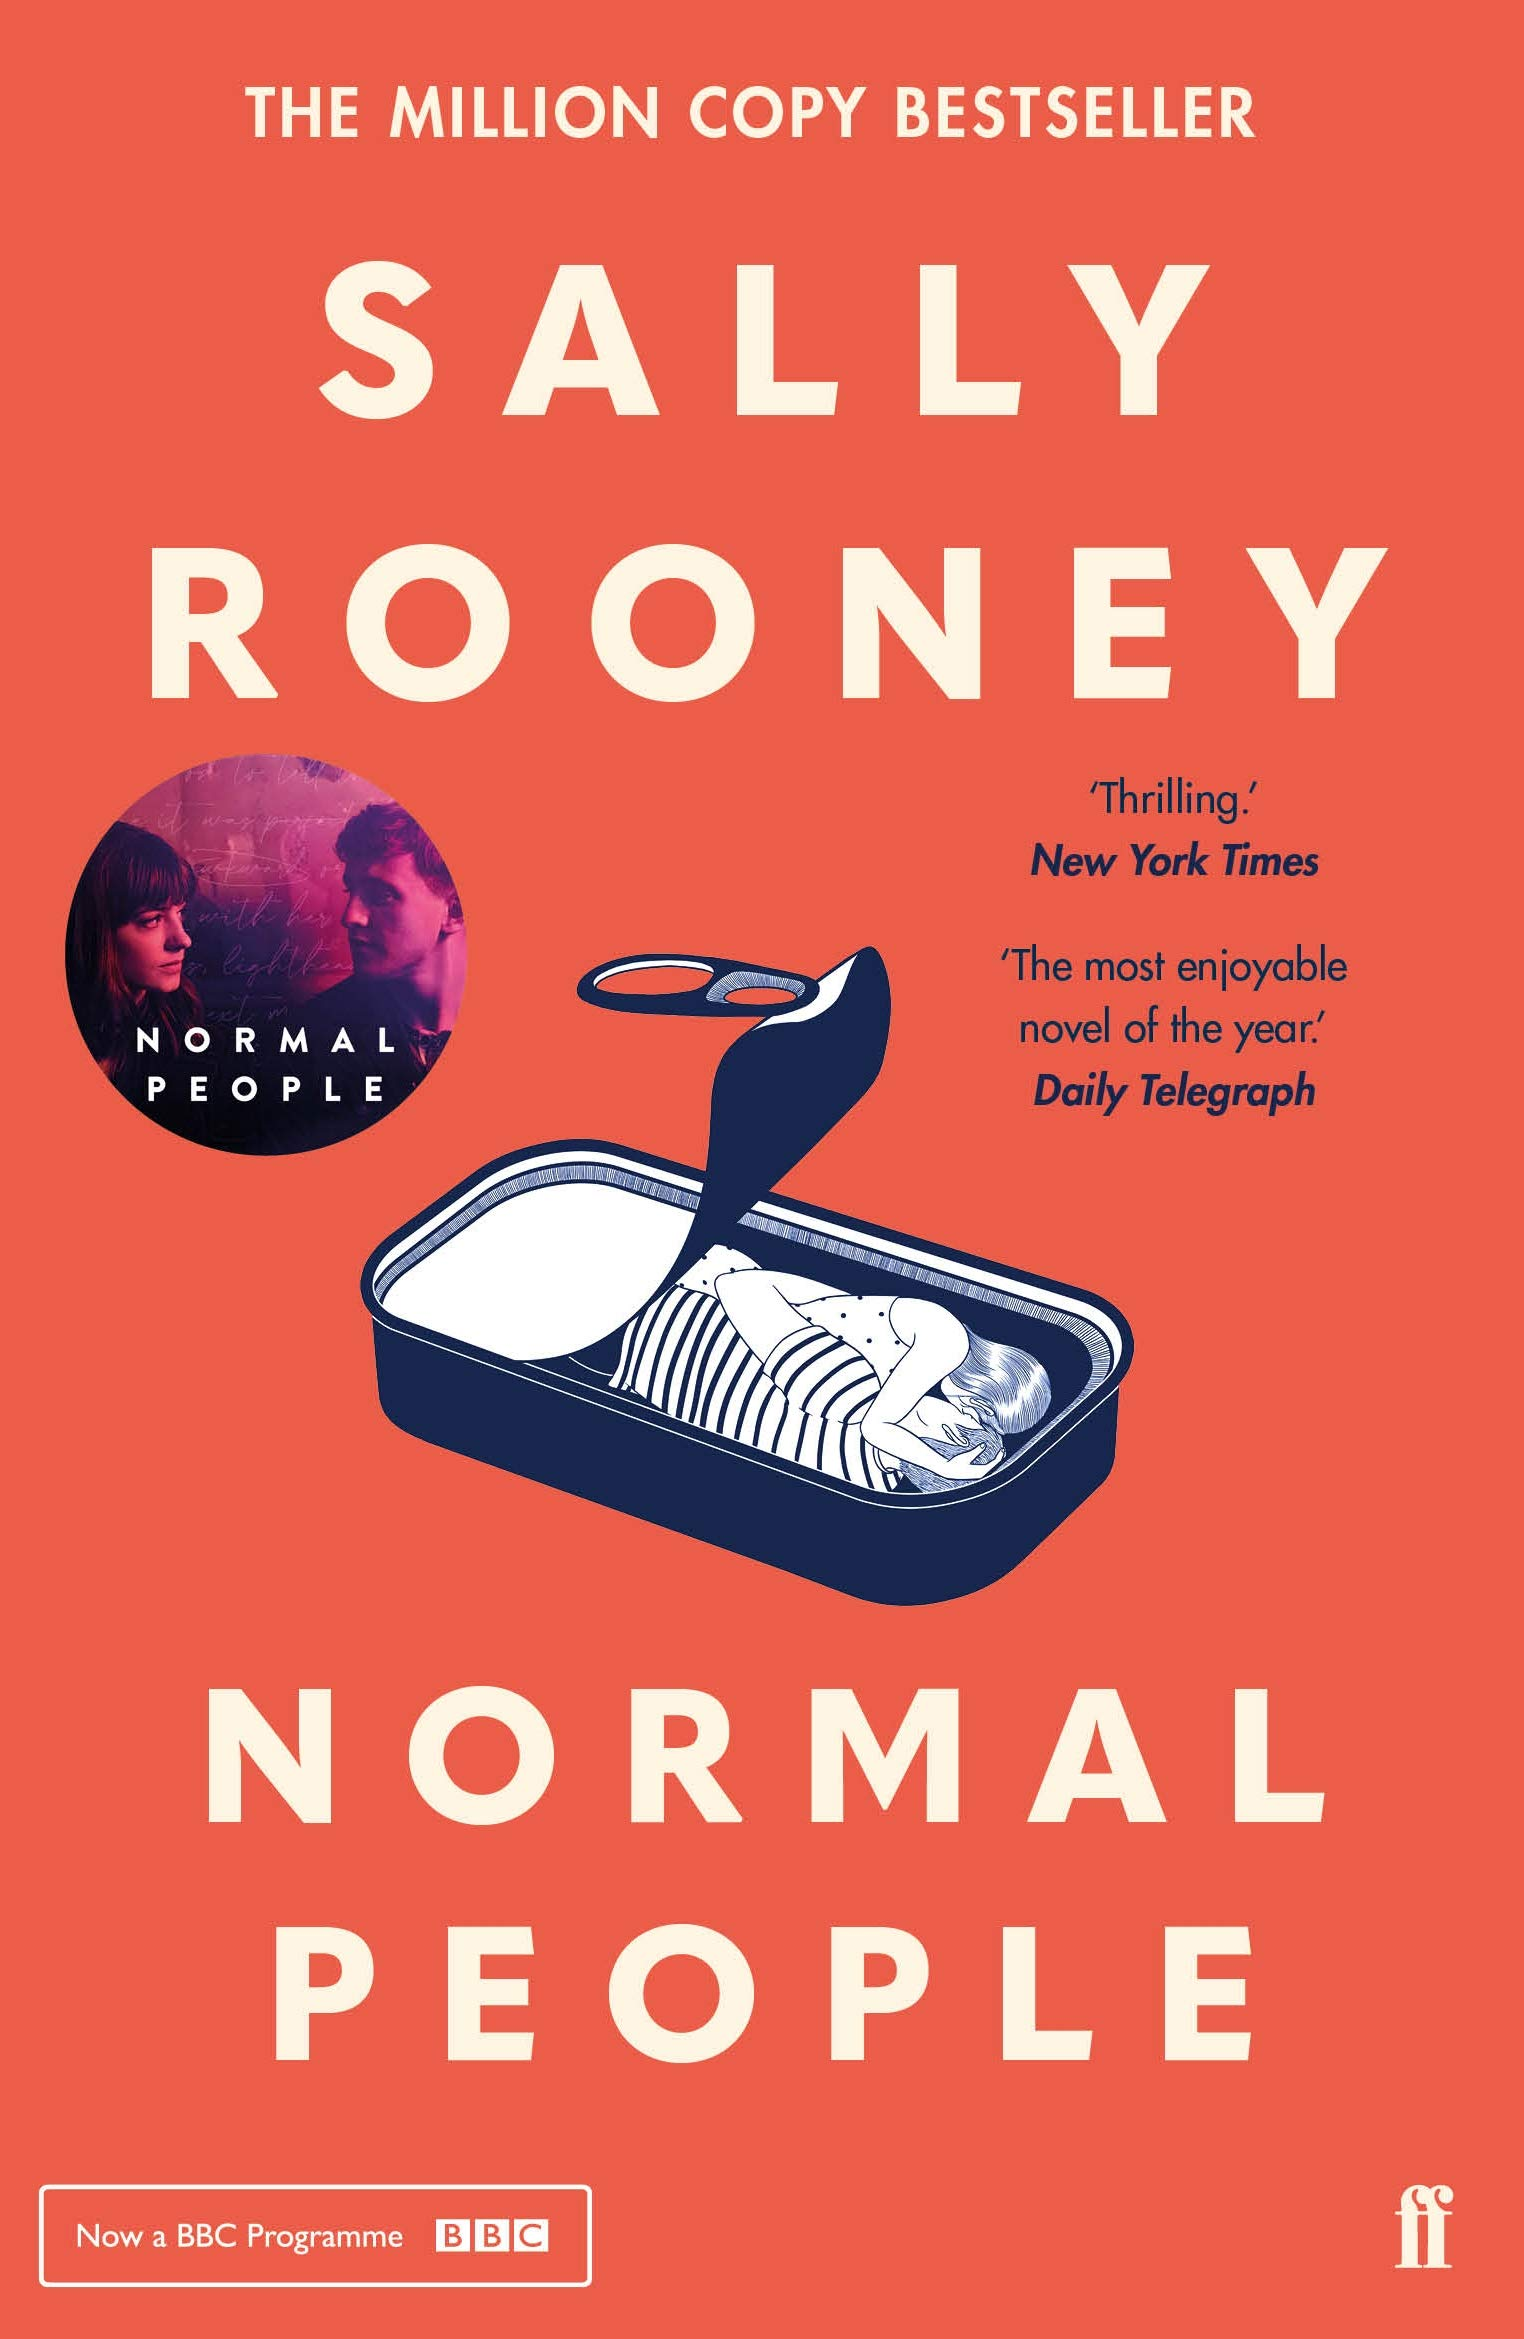 Buy Normal People Book Online at Low Prices in India | Normal People  Reviews & Ratings - Amazon.in